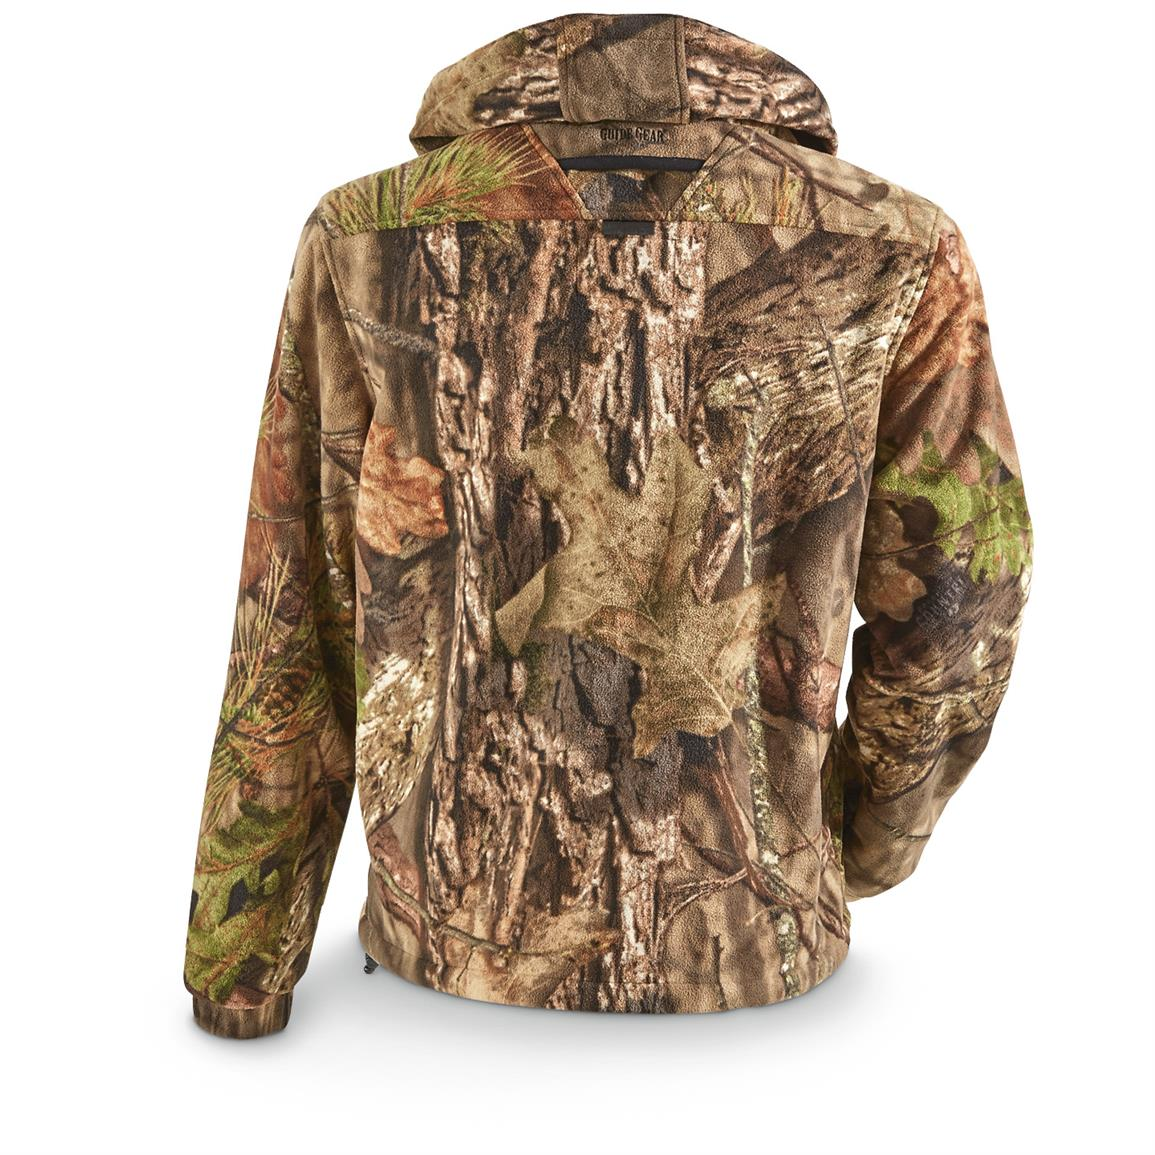 Outer shell is 200-gram 100% polyester microfleece that's warm, windproof, and comfortable